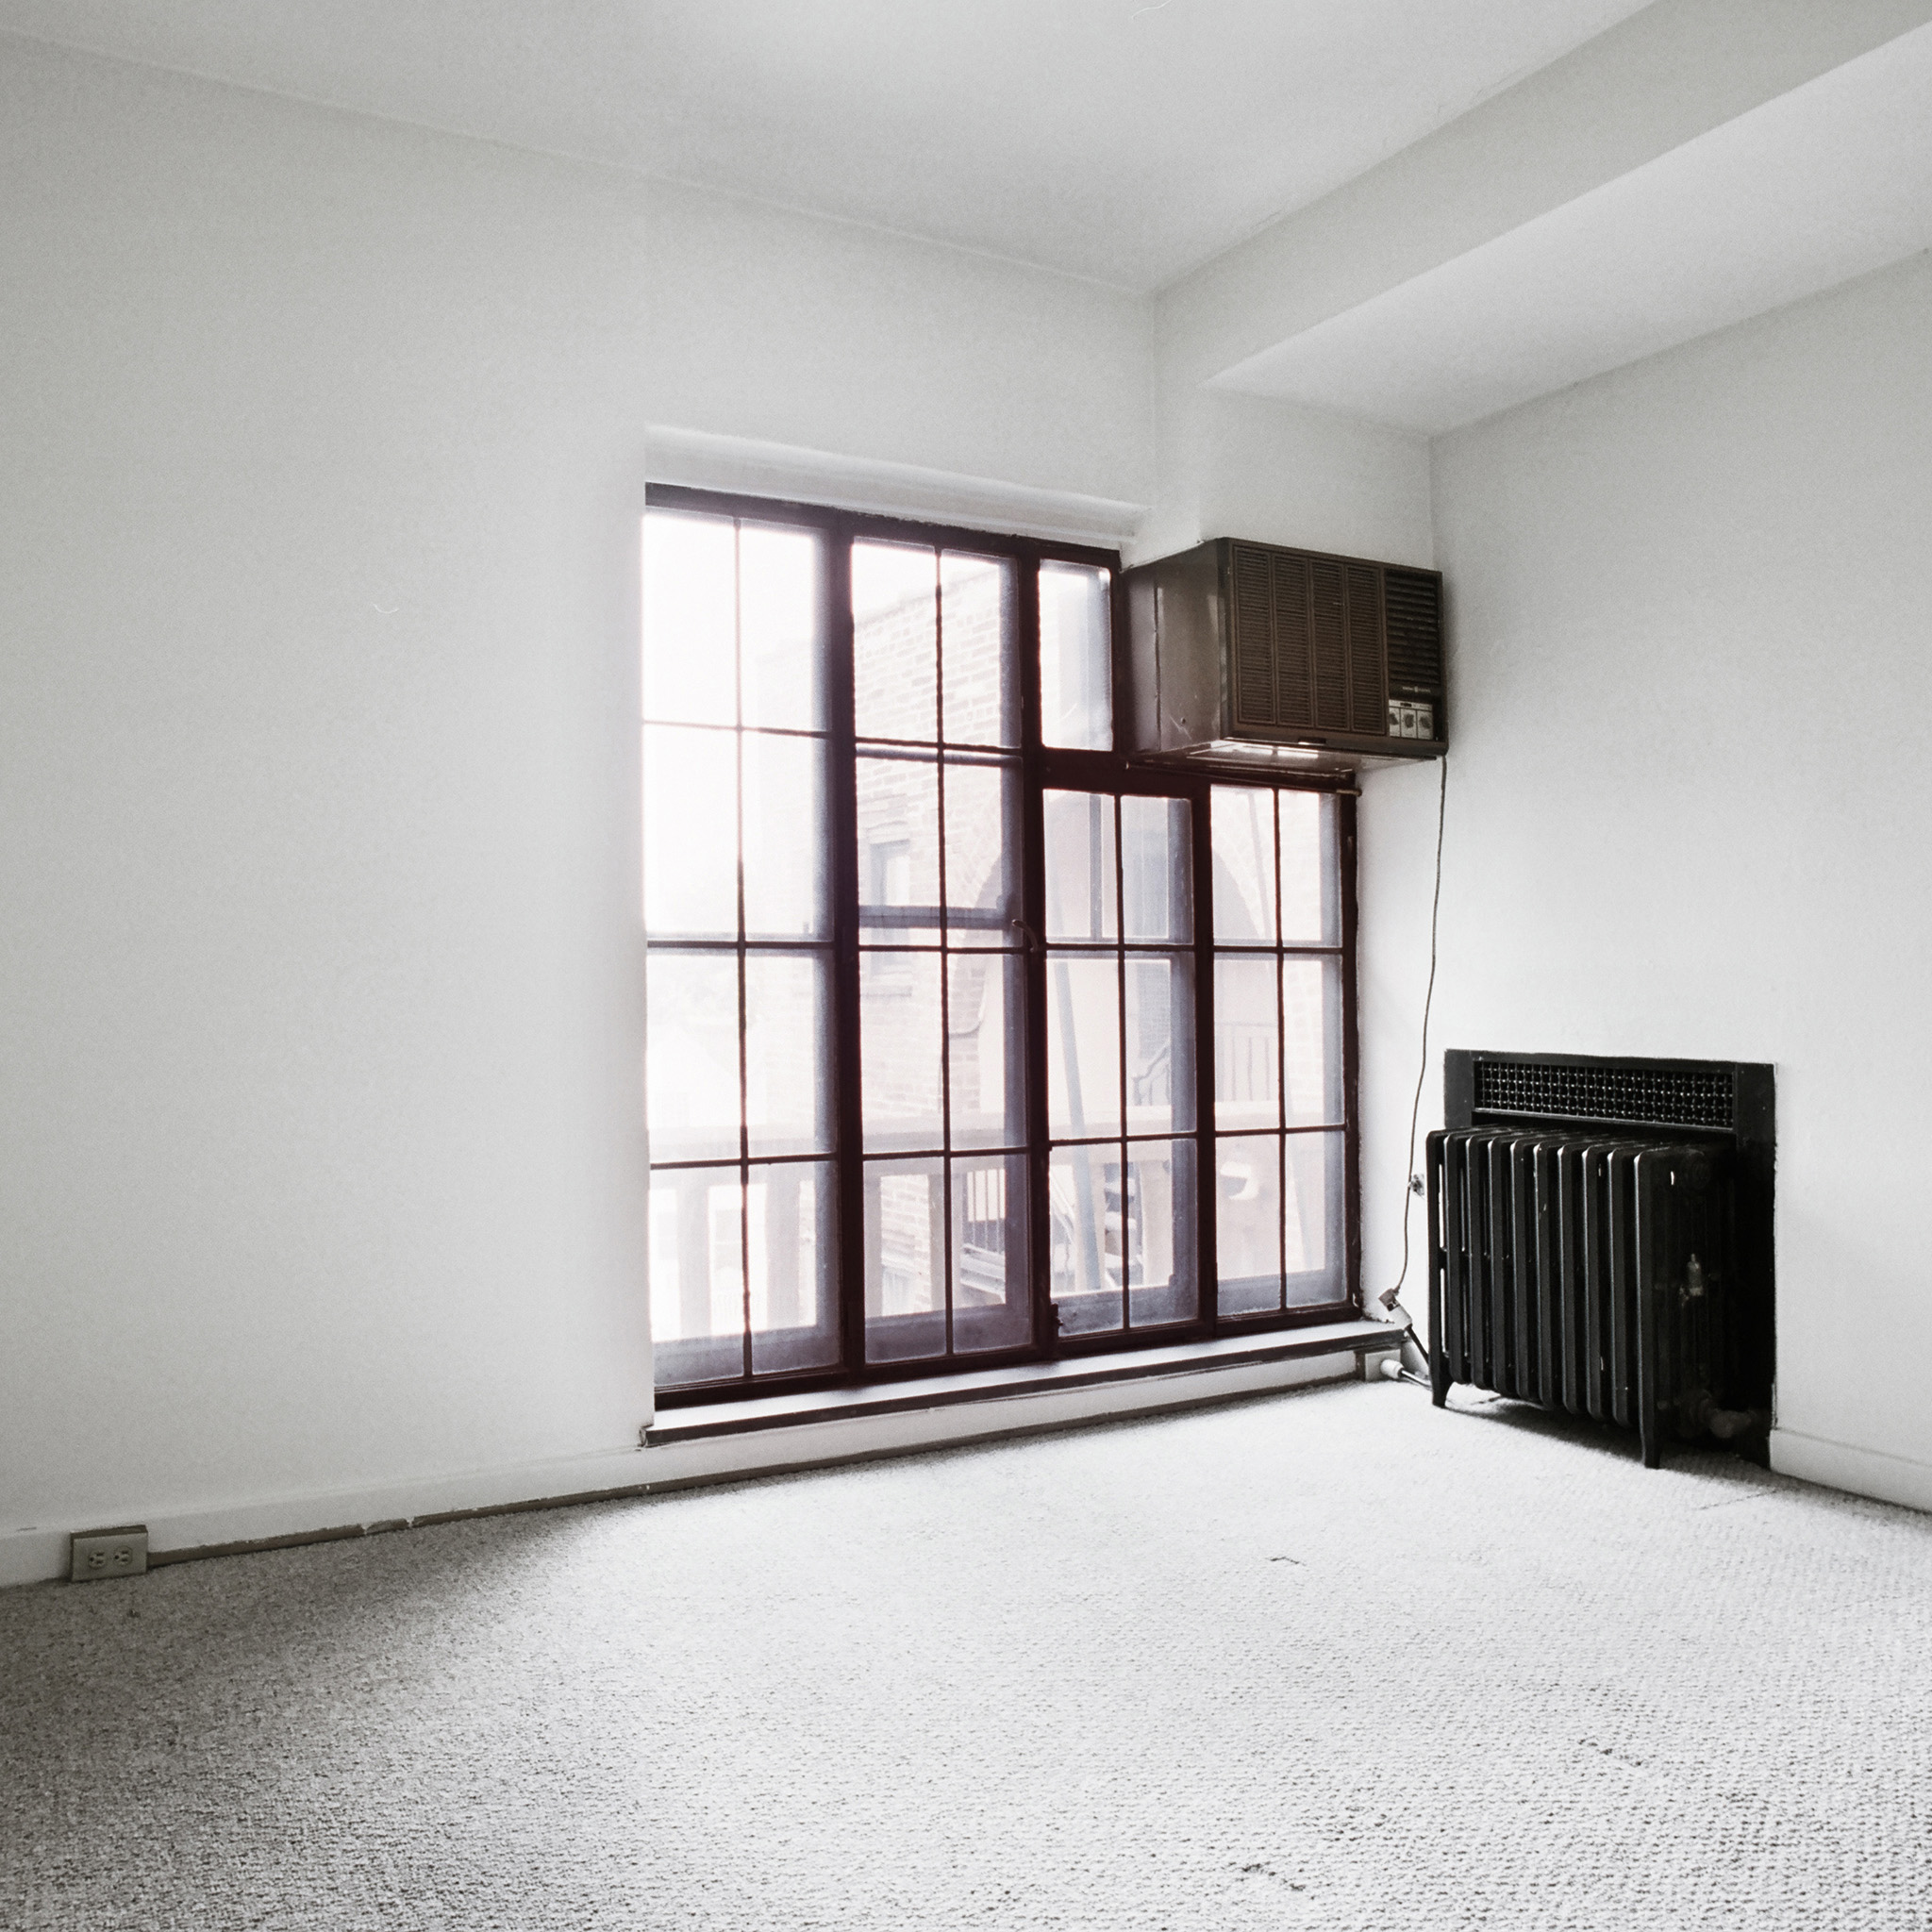 interior of 342 S. Highland Ave, Apt. 16A 4